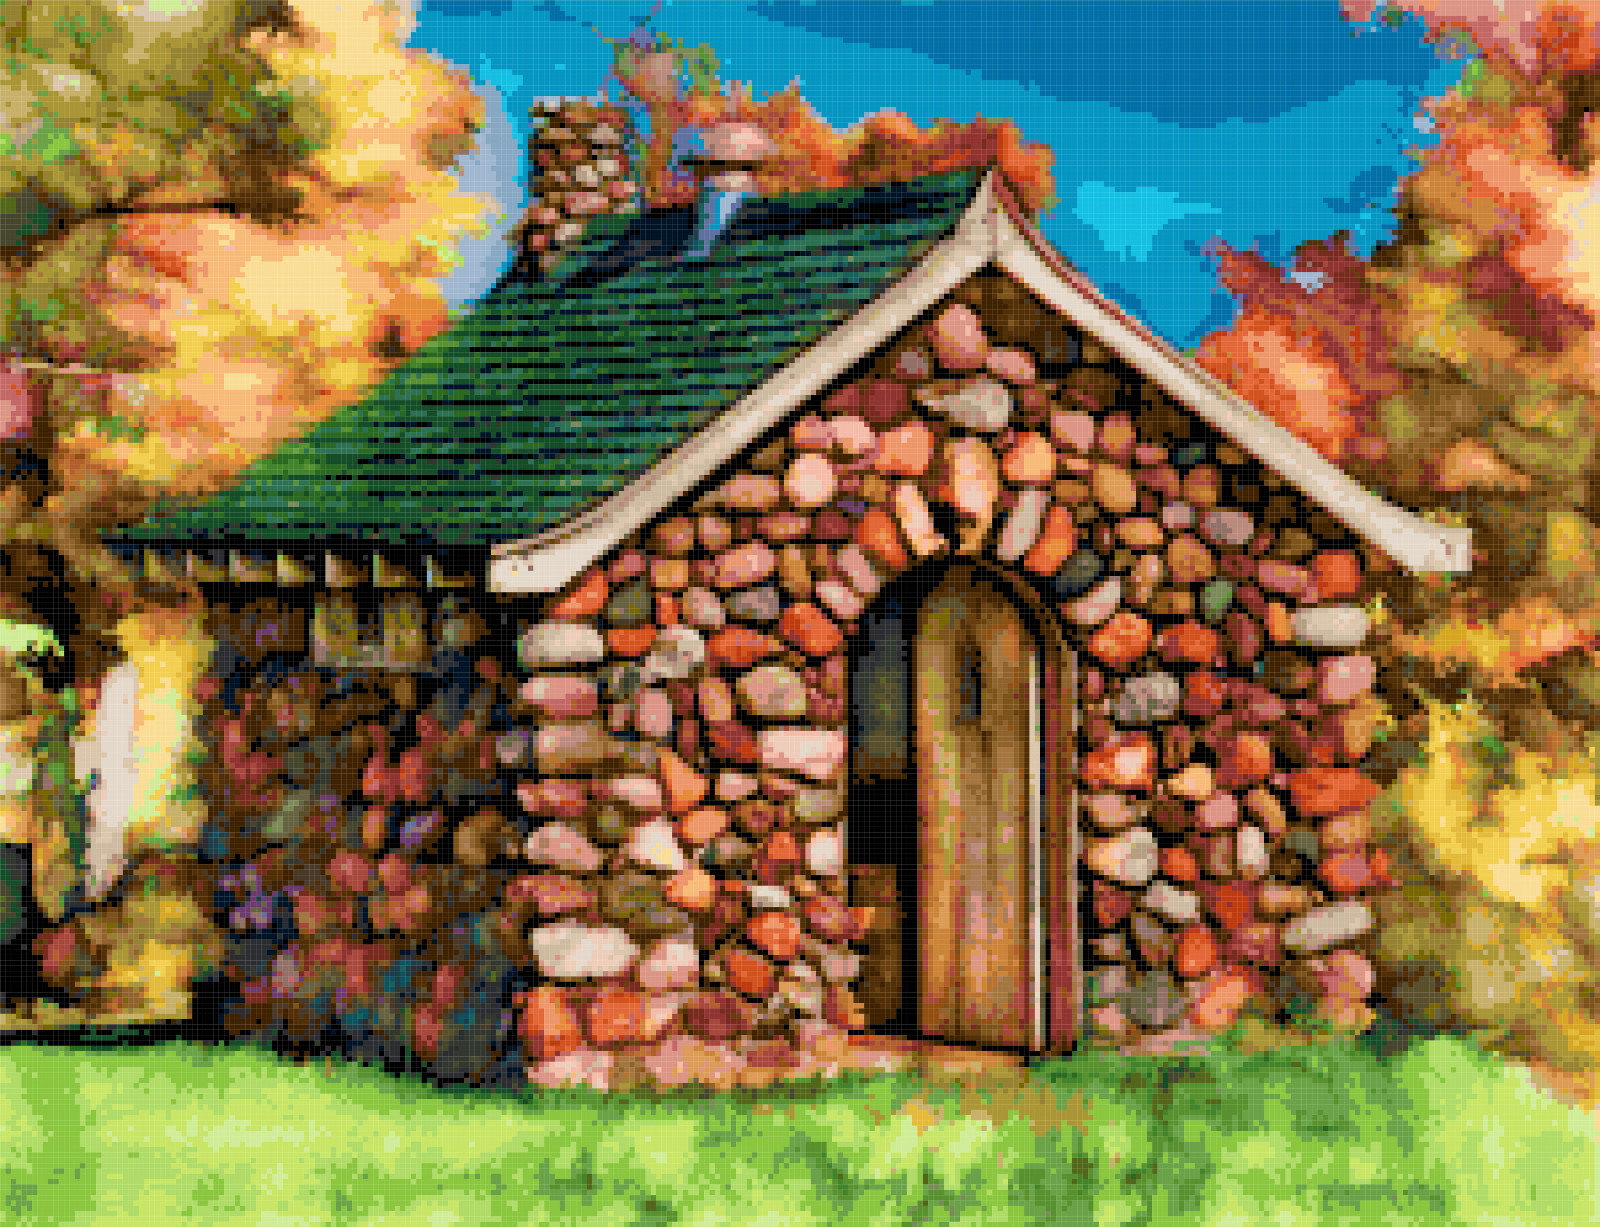 stone hut cross stitch image